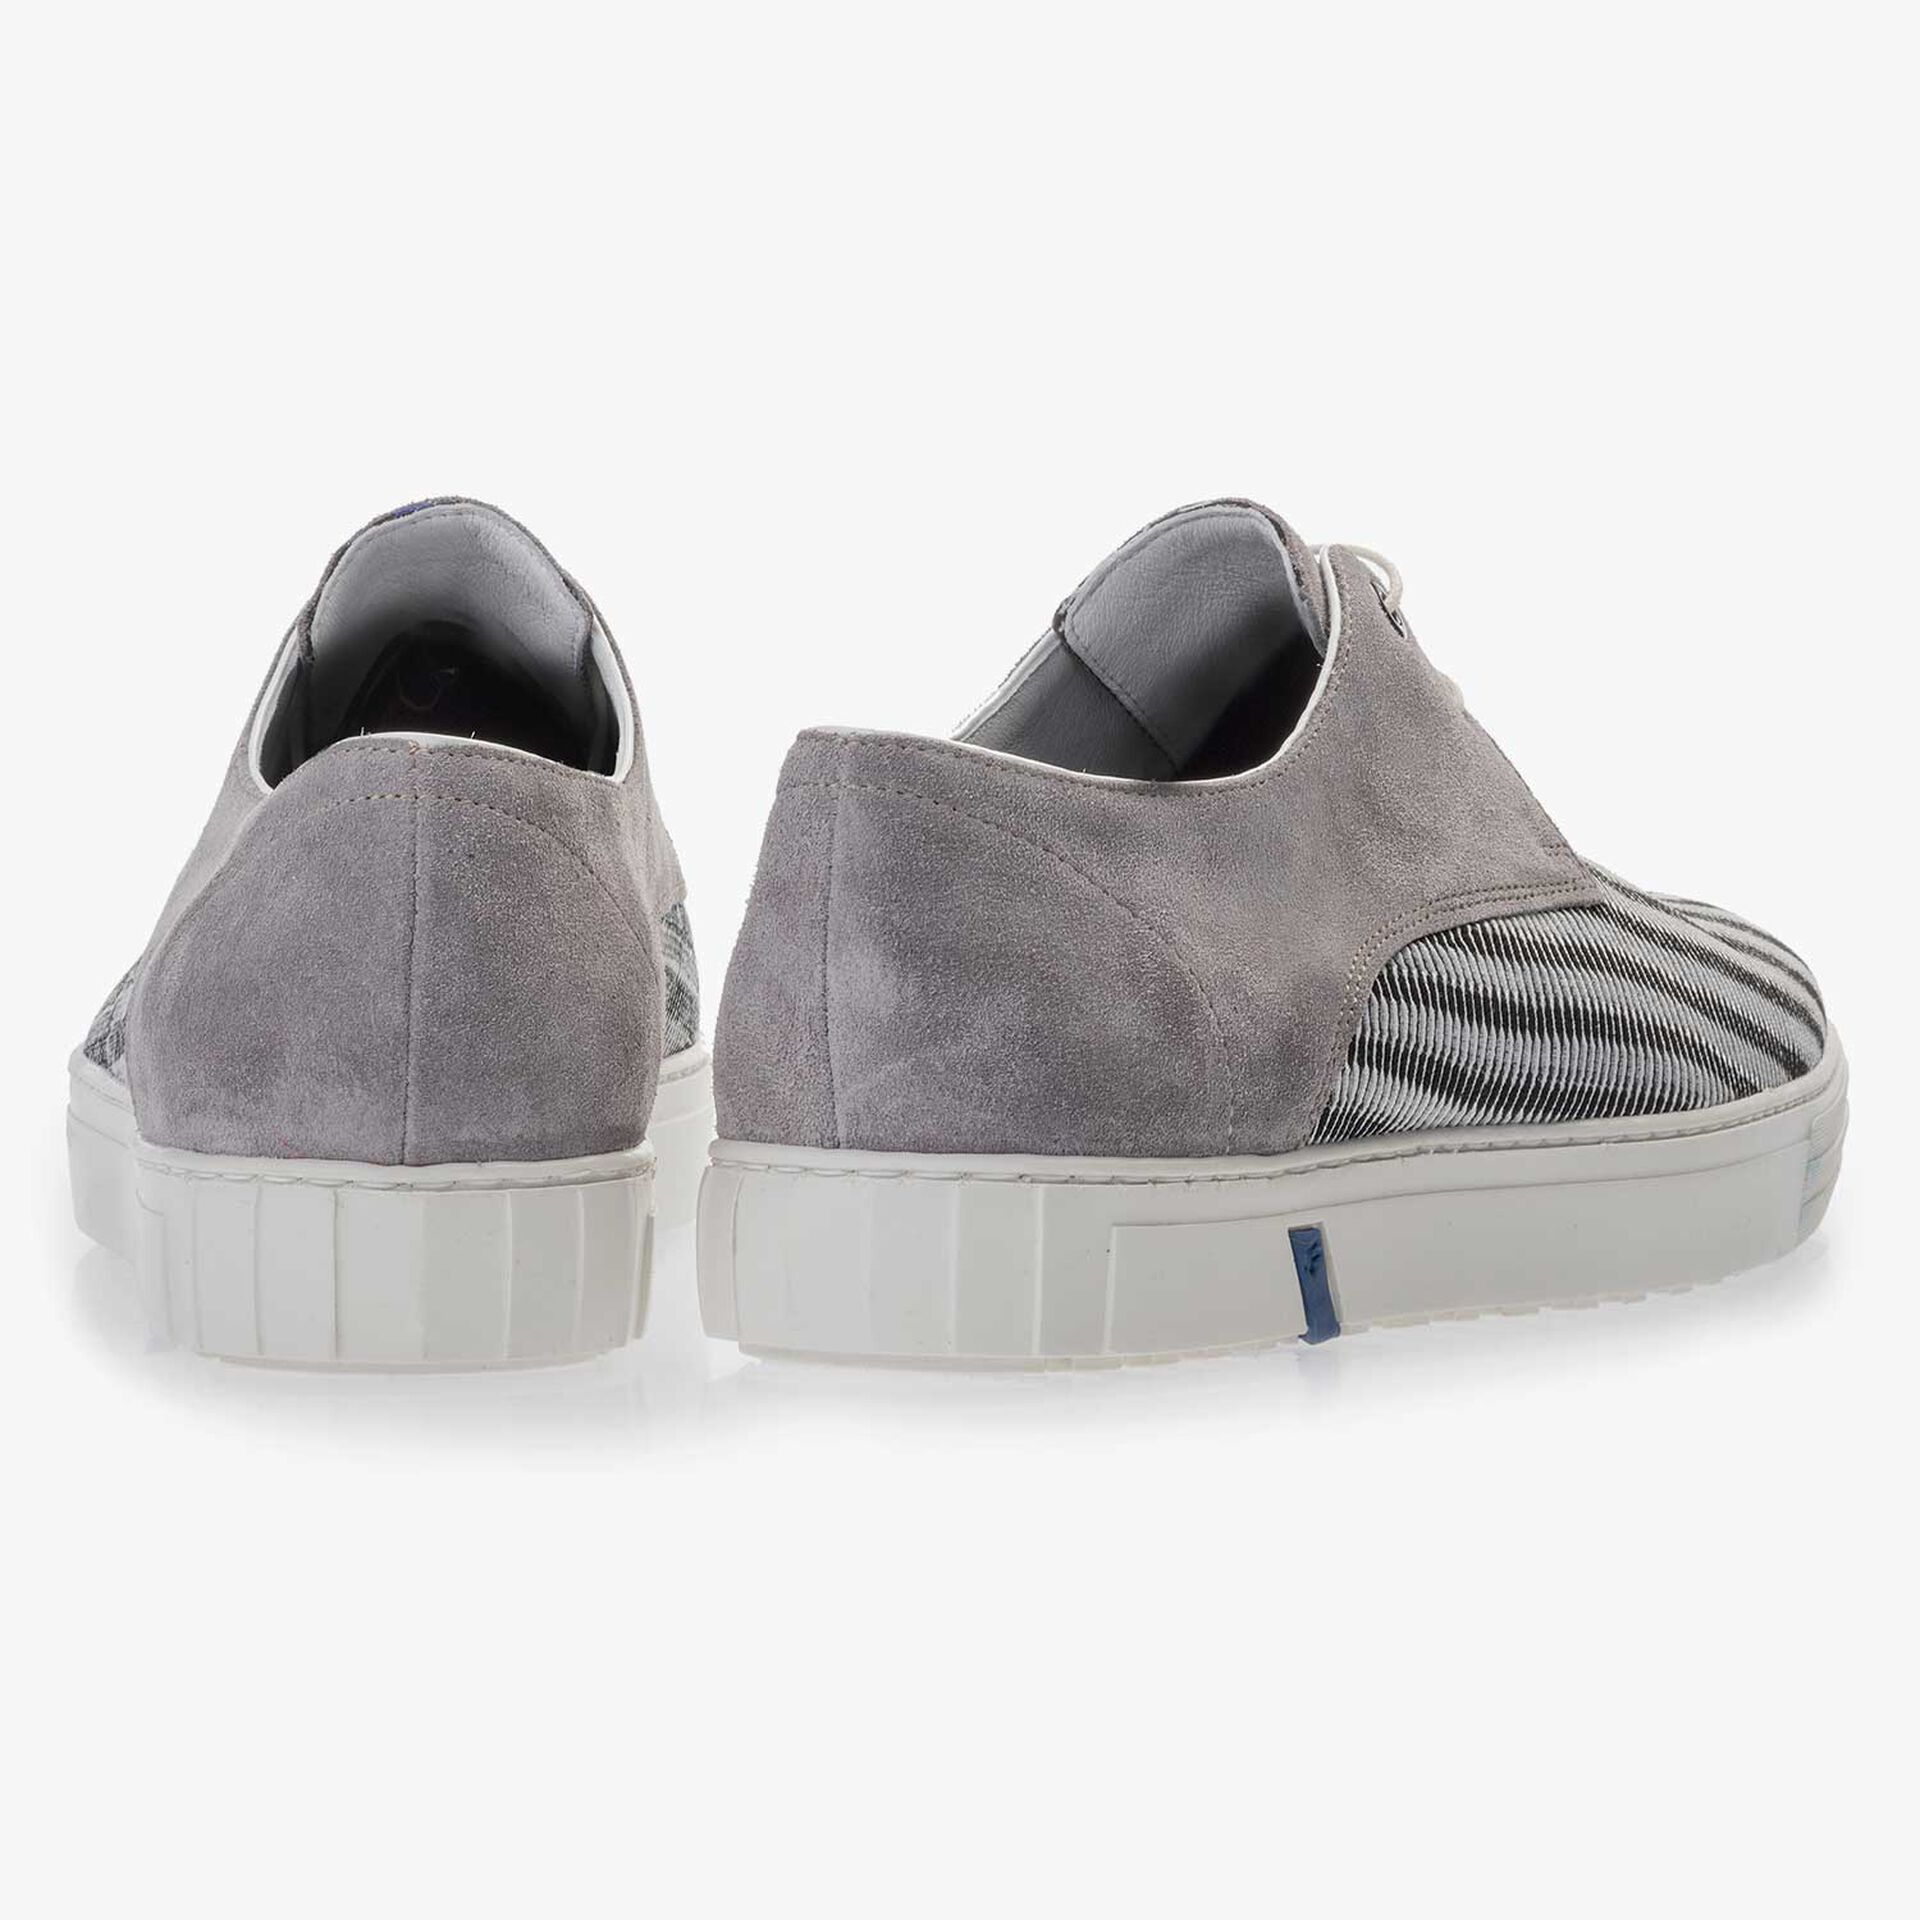 Grey sneaker finished with a mesh relief pattern